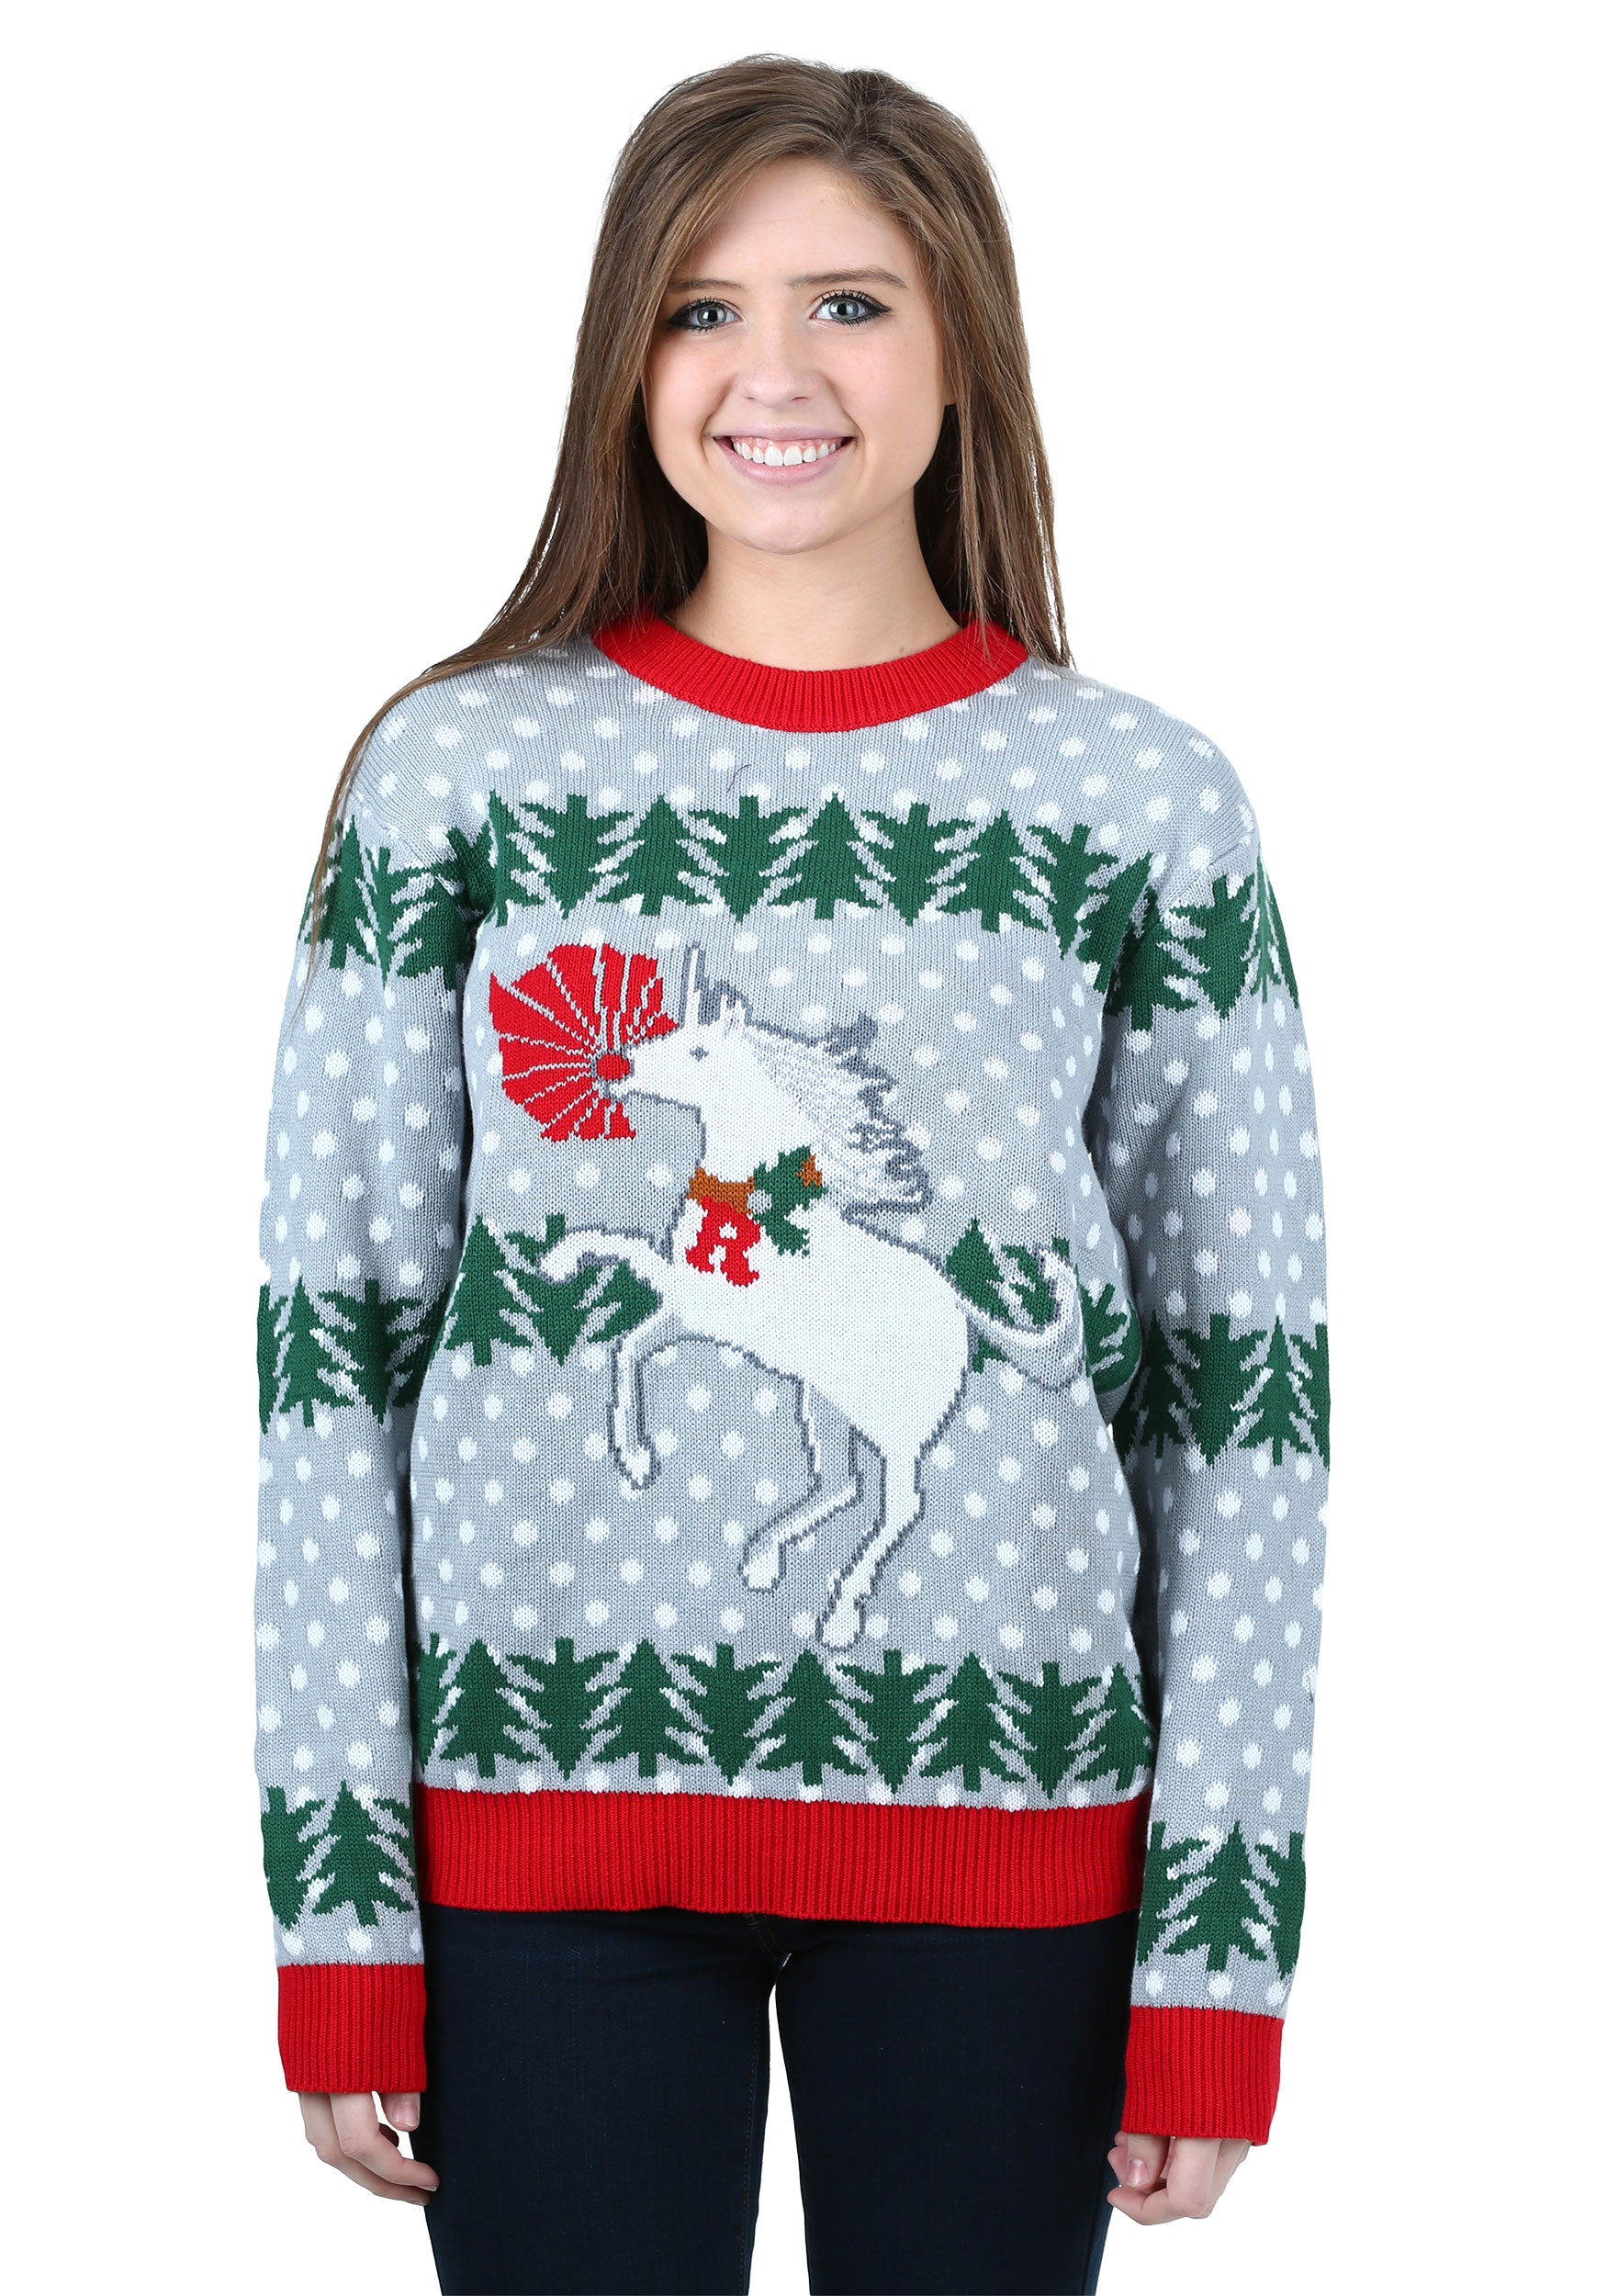 In all seriousness, all of our women's ugly Christmas sweaters, from our Star Wars sweaters, to our 3D ugly Christmas sweaters Harry Potter ugly holiday sweaters, our Deadpool ugly Christmas sweaters are all unisex but look especially great on women.